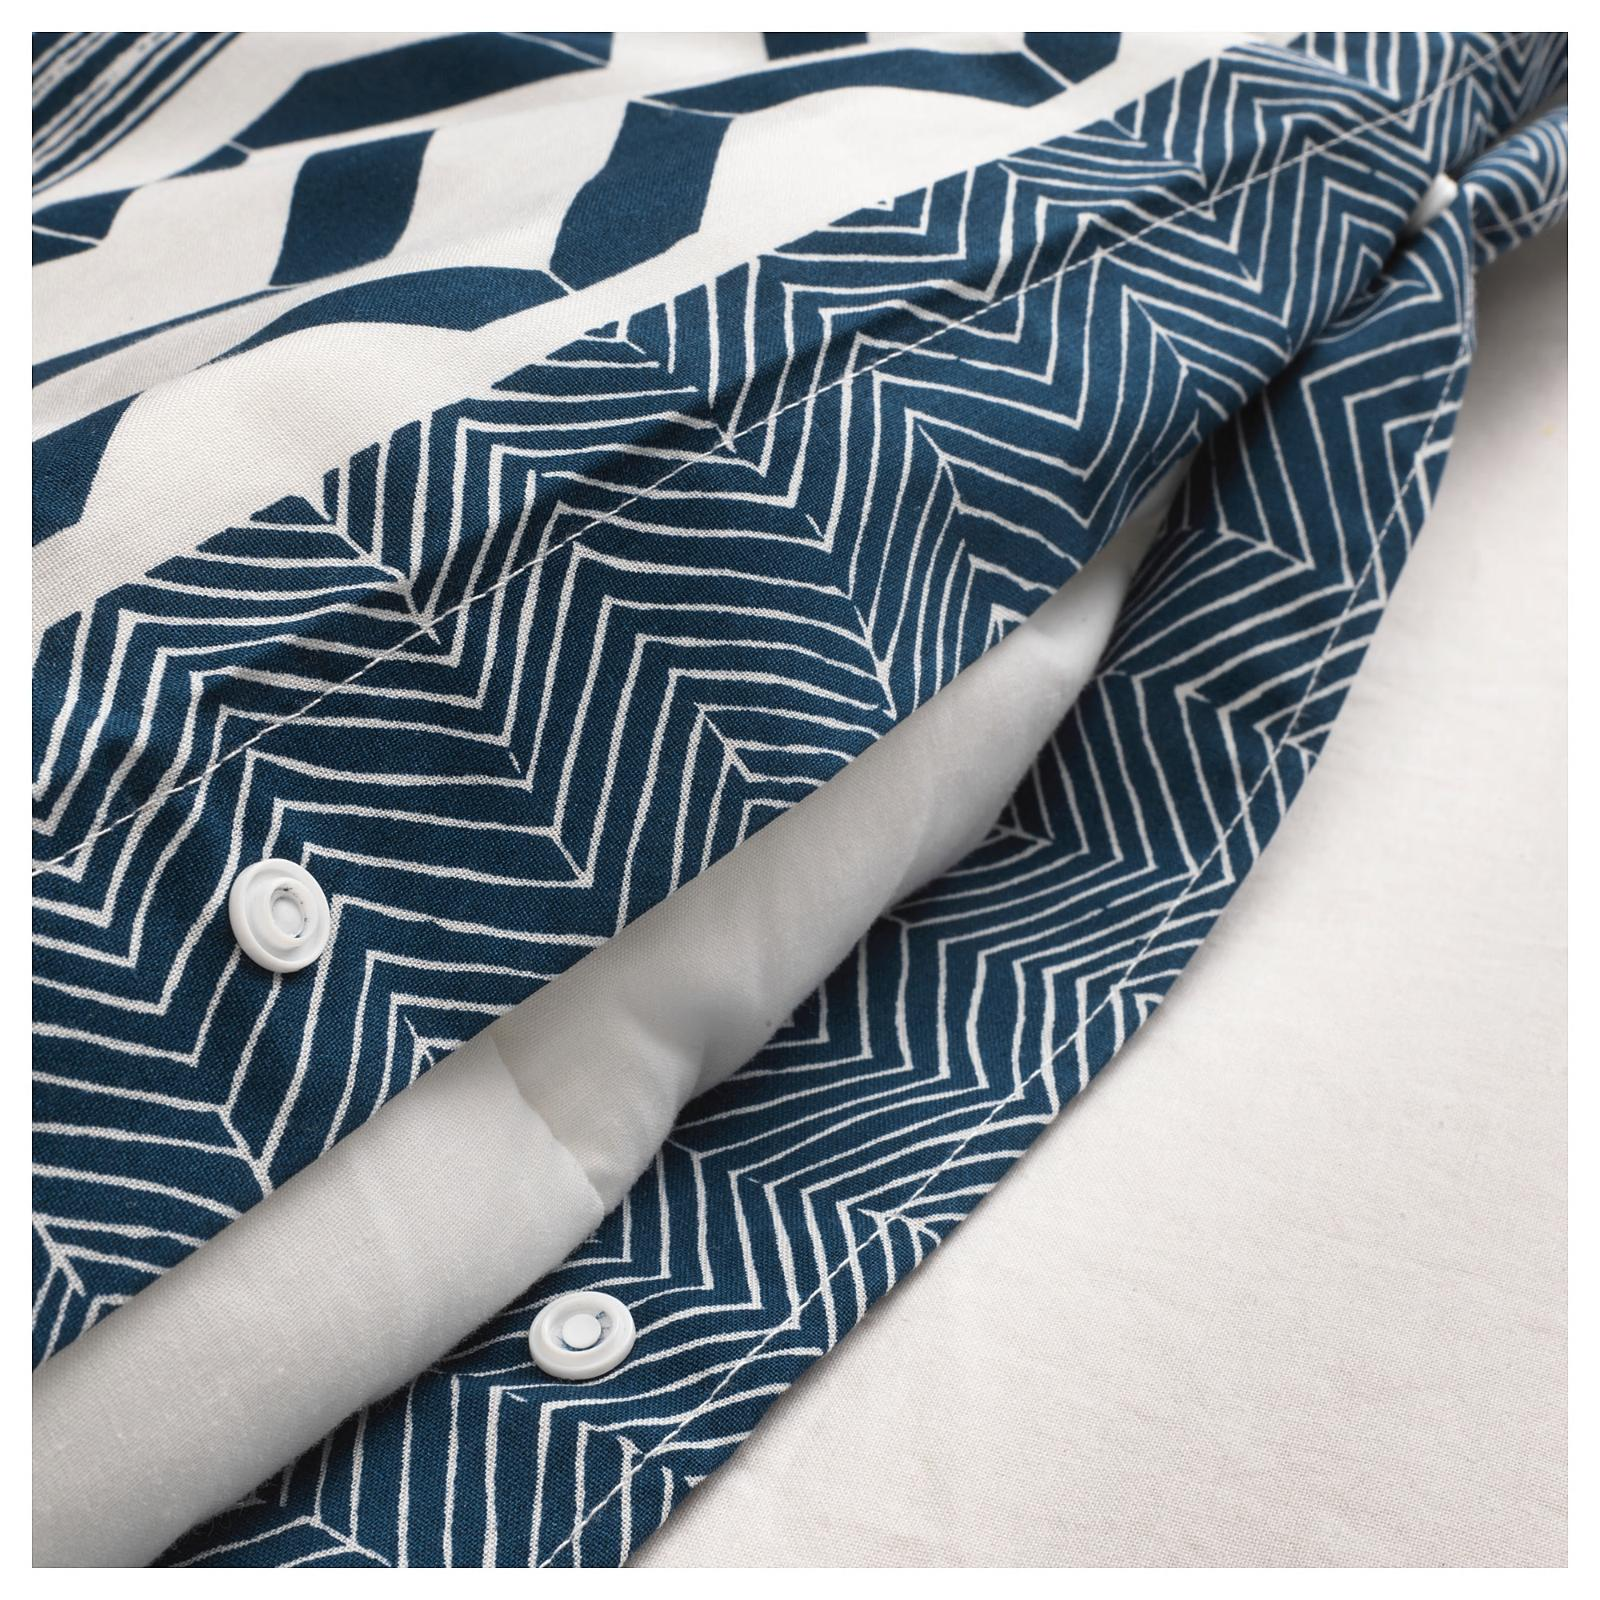 New IKEA Duvet cover and white,